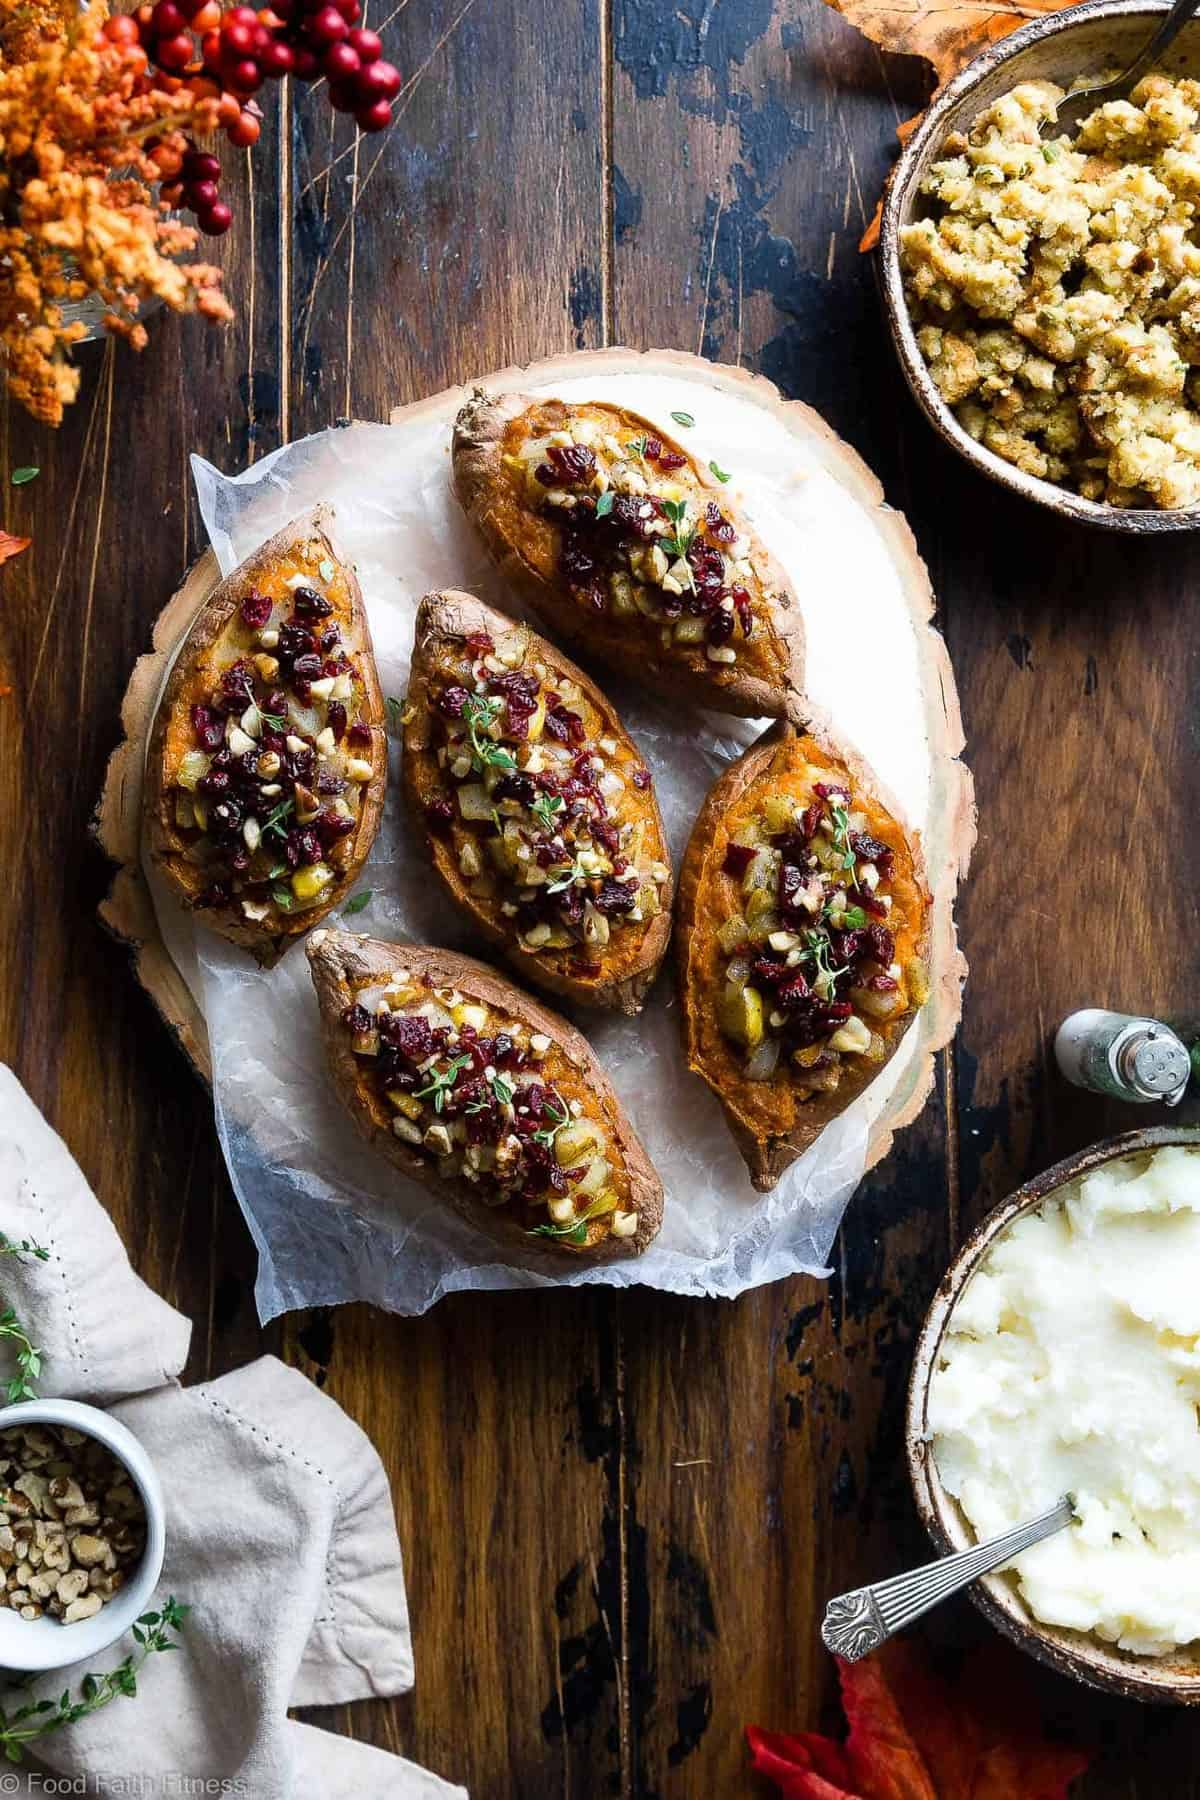 Harvest Paleo Vegan Stuffed Sweet Potatoes - These healthy stuffed sweet potatoes are loaded with cozy, spicy-sweet fall flavors like cranberries, walnuts and pears and are SO easy to make! Gluten, grain and dairy free and whole30 compliant too! | #Foodfaithfitness | #Paleo #Vegan #Glutenfree #Healthy #Whole30